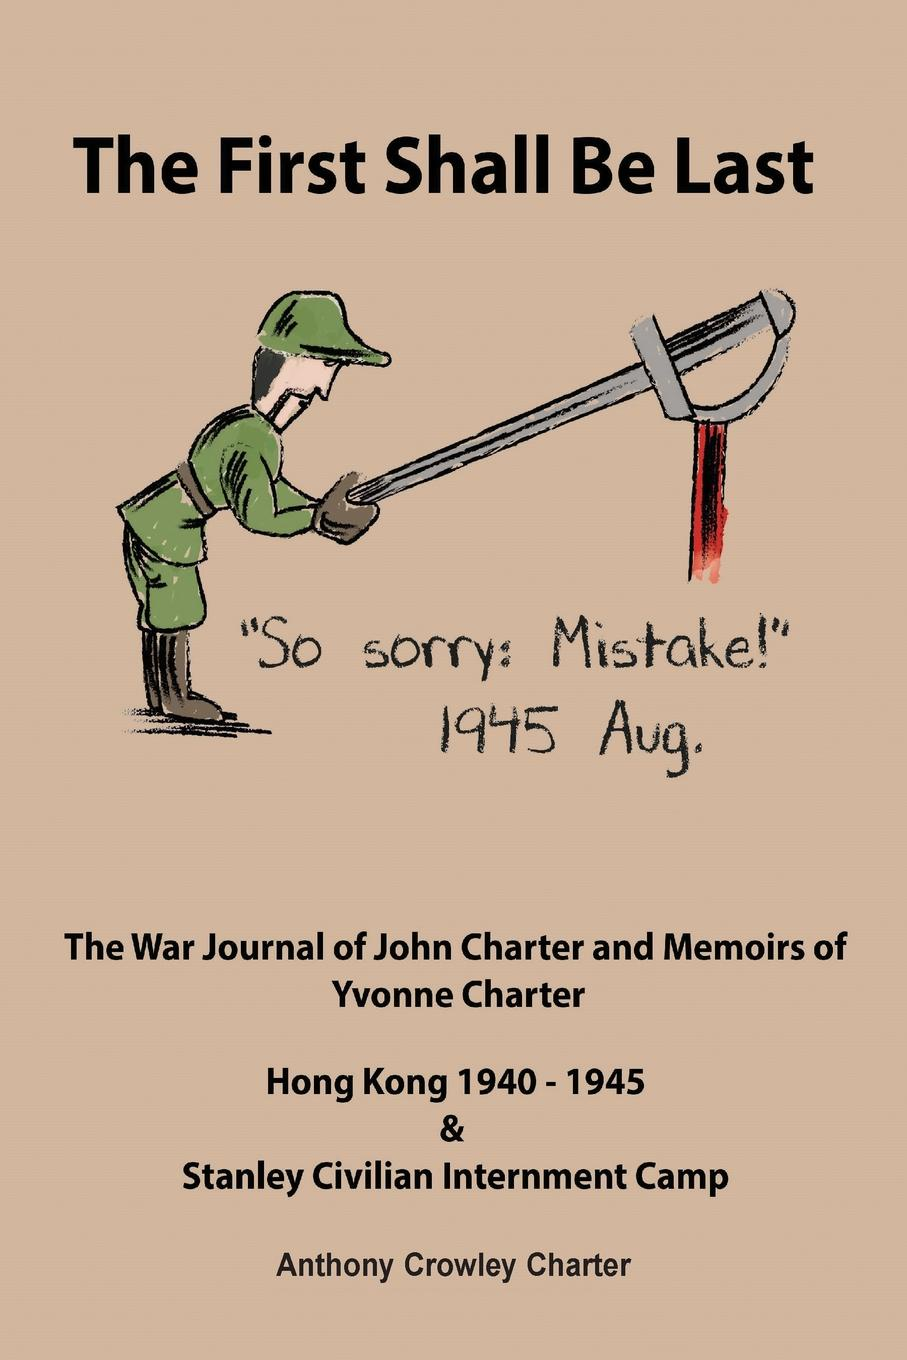 Anthony Crowley Charter The First Shall Be Last.  War Journal of John  and Memoirs  Yvonne